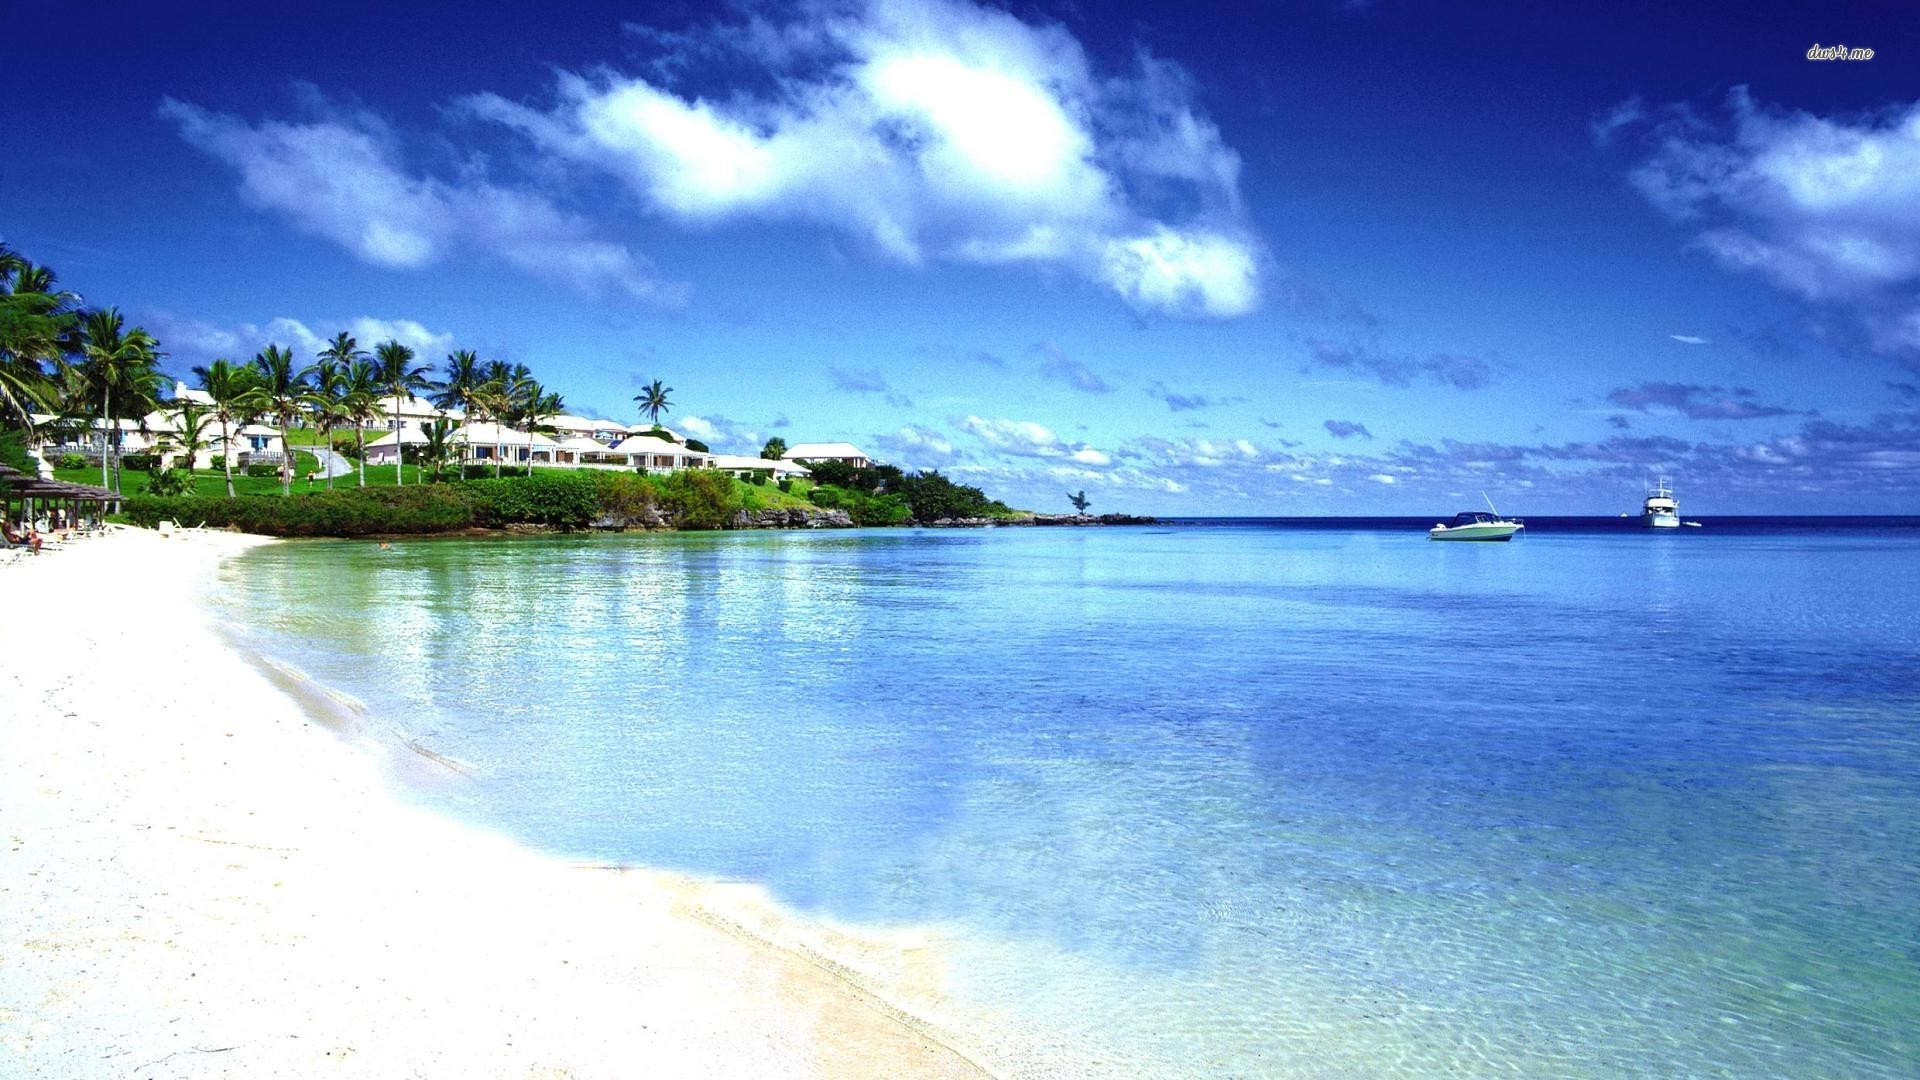 cambridge beach bermuda Desktop Backgrounds for HD 1920x1080